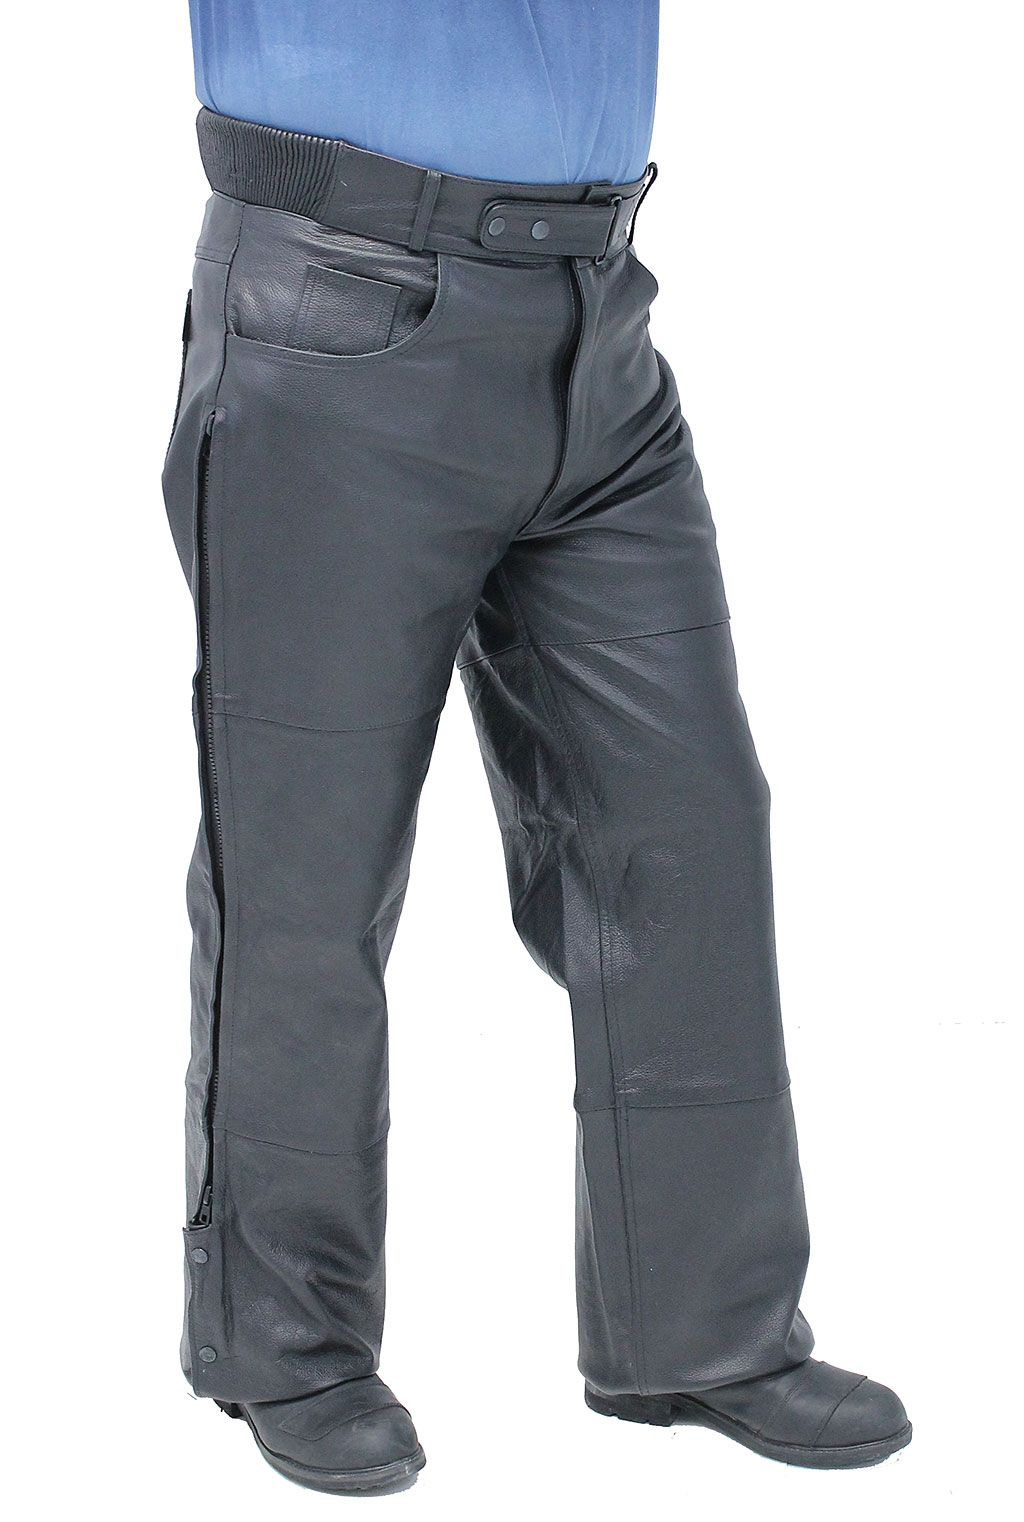 Premium quality leather motorcycle overpants.